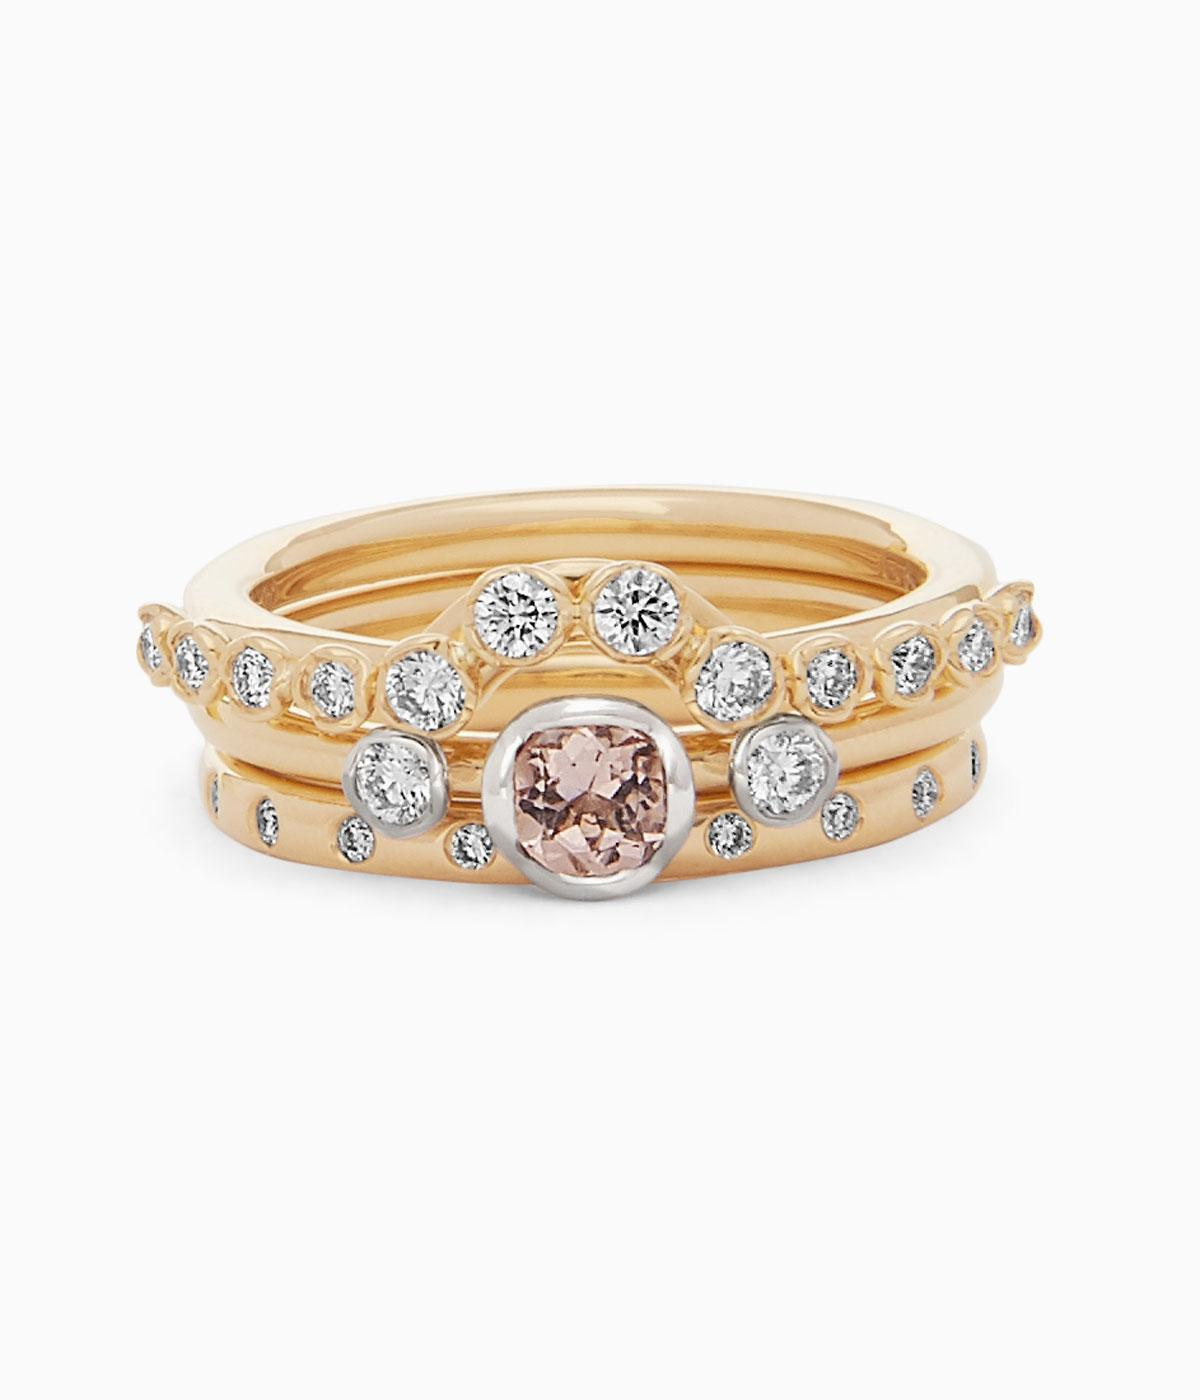 Gold engagement ring with pale red main stone and studded in diamonds on the band